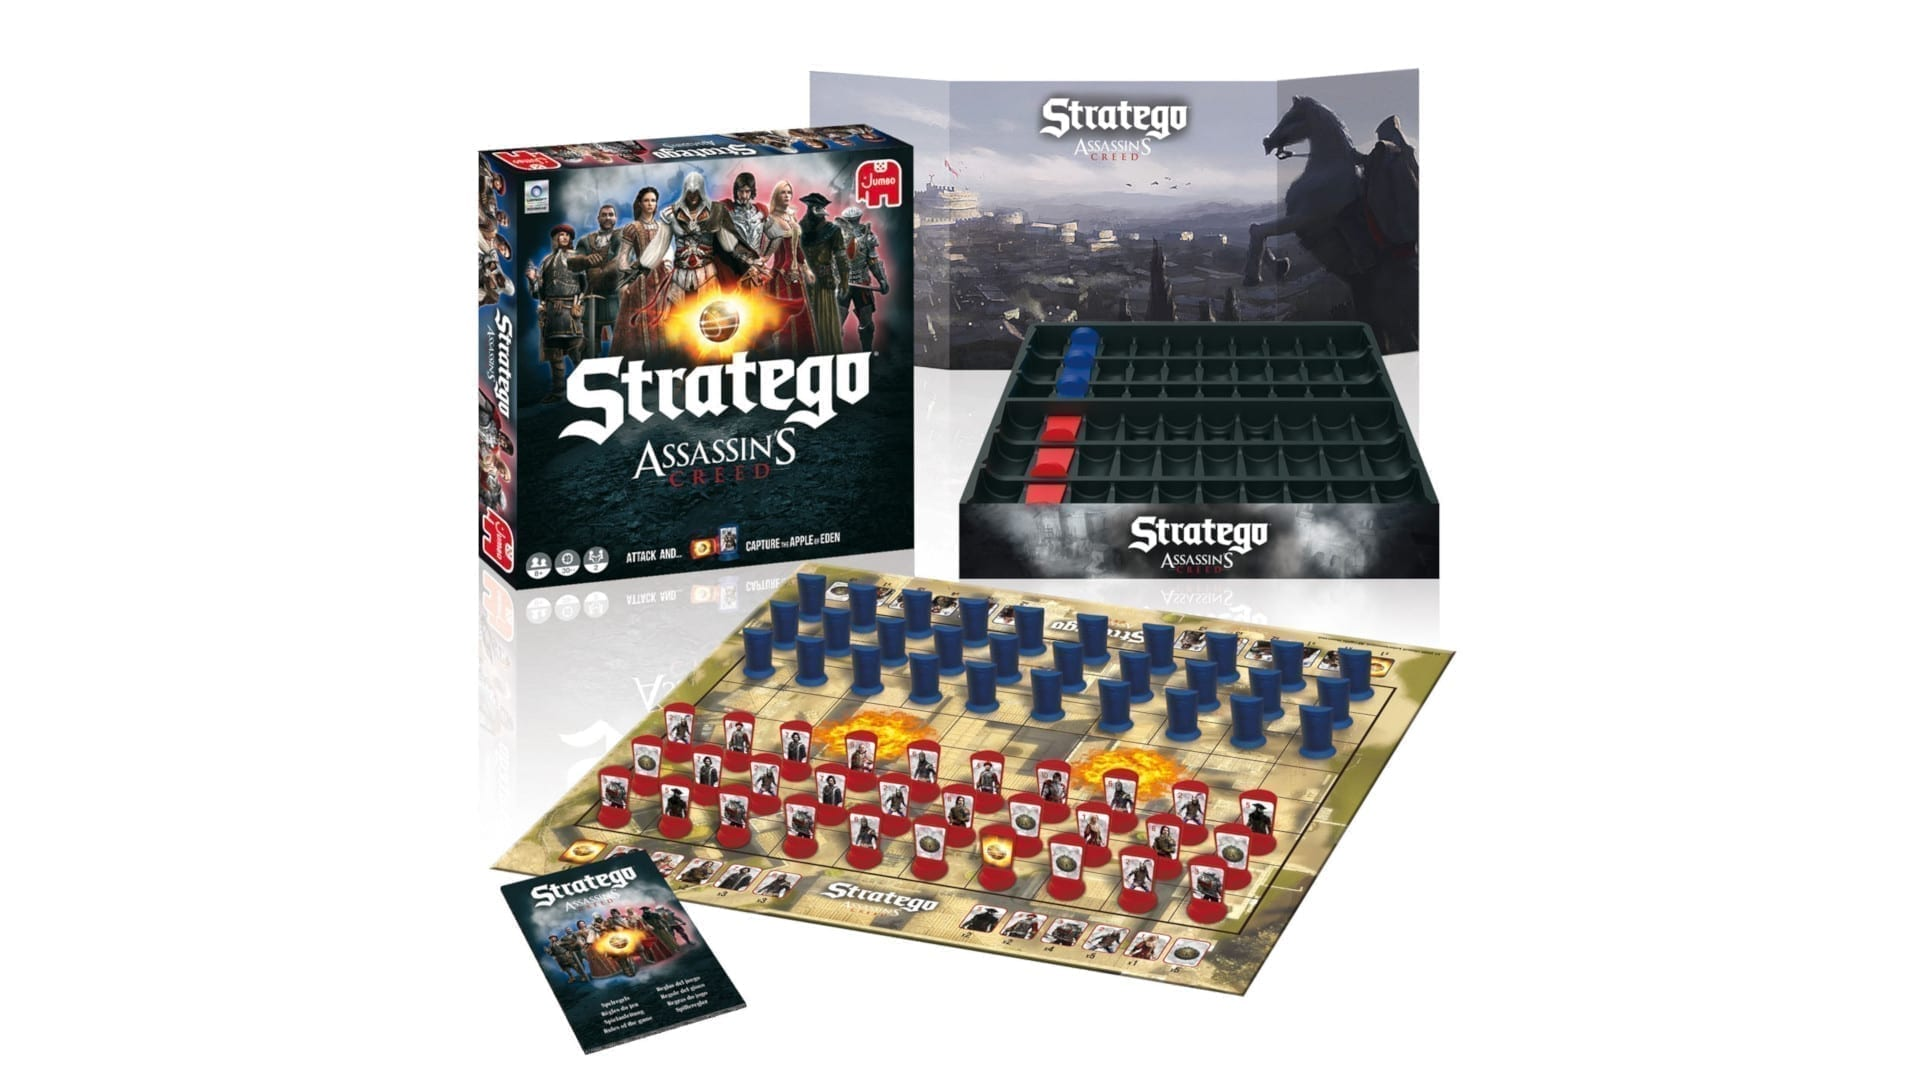 Stratego Assassins Creed Inhalt